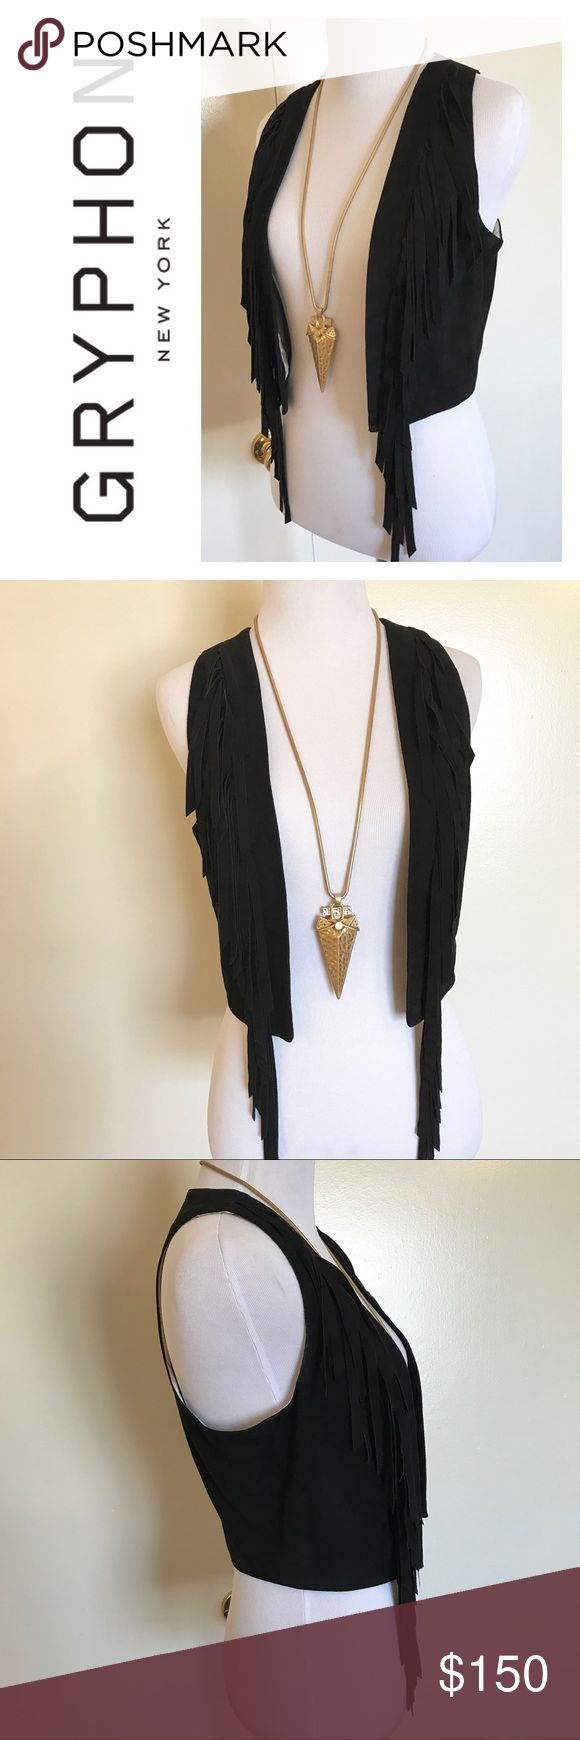 GRYPHON - Black Suede Fringe Vest - Sz. M Seriously chic black suede Gryphon New York vest. In very good condition. Runs true to size. Has a few spots on the inside lining which is not visible when wearing. 100% leather. Perfect for festivals or as a layer to a simple outfit! Gryphon Jackets & Coats Vests